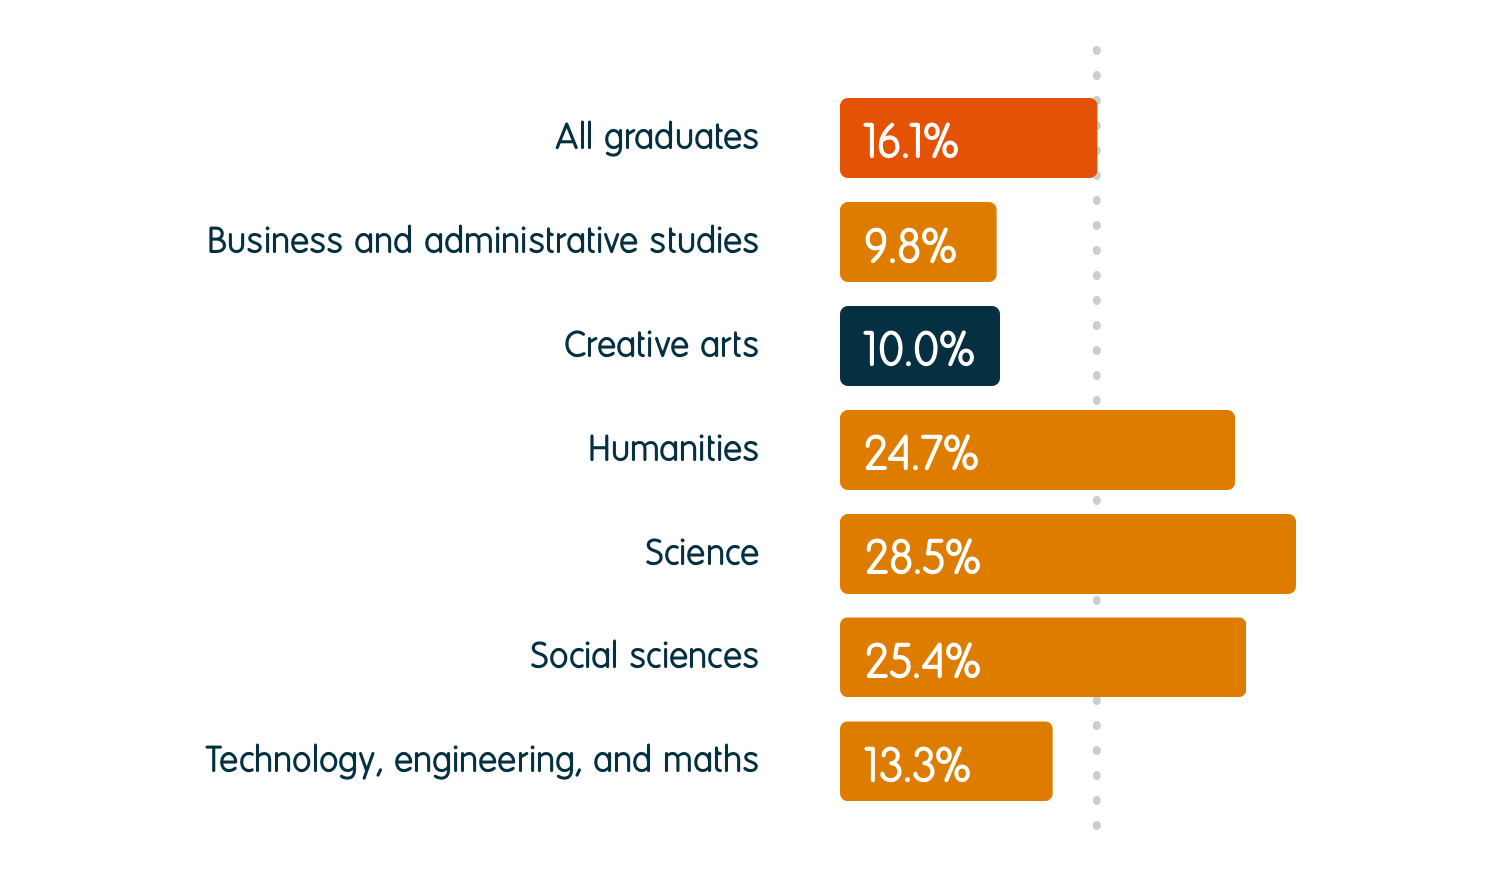 10.0% of creative arts graduates were in further study six months after graduation, compared to an average of 16.1% for all graduates. For other subject groups, the percentage going into further study was 9.8% for business and administrative studies, 24.7% for humanities, 28.5% for science, 25.4% for social sciences, and 13.3% for technology, engineering, and maths.